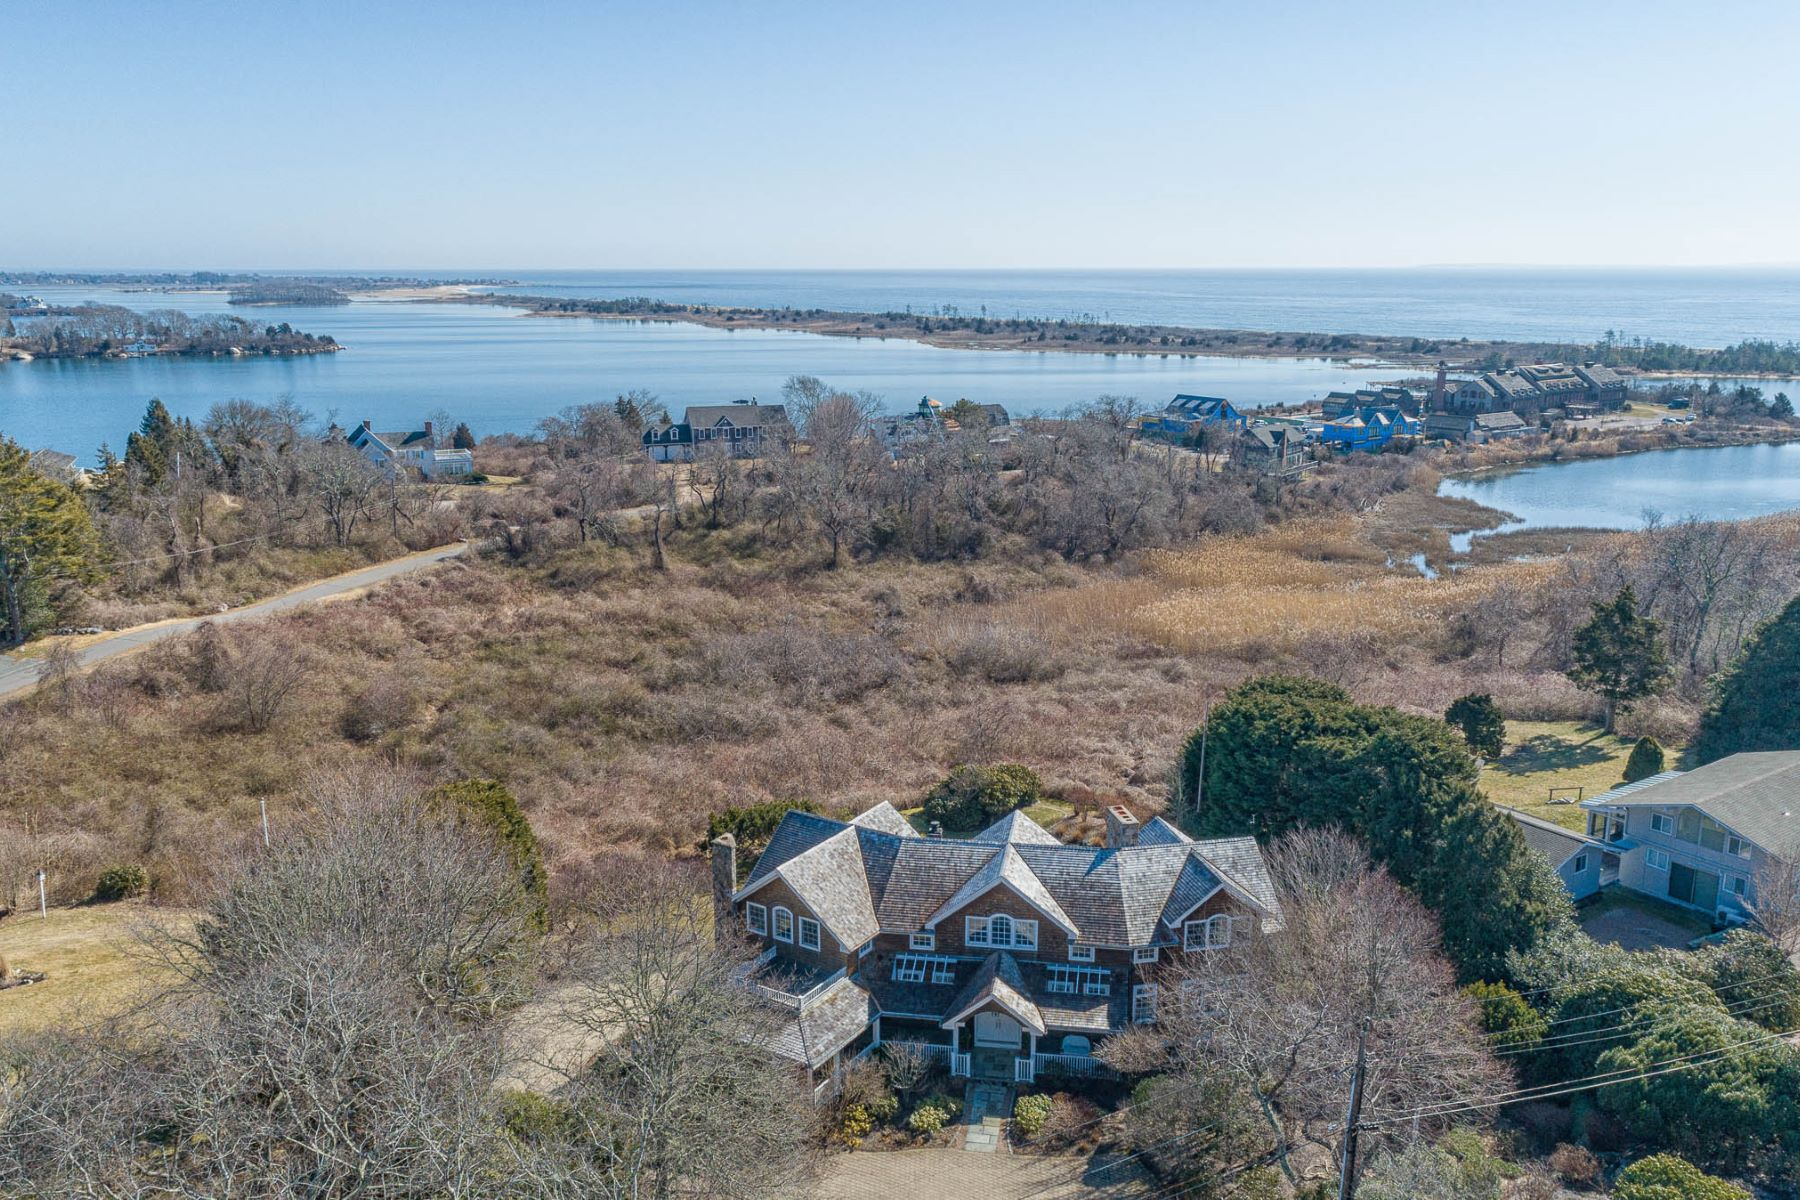 Single Family Homes for Sale at 30 Meadow Avenue, Westerly, RI 30 Meadow Avenue Westerly, Rhode Island 02891 United States